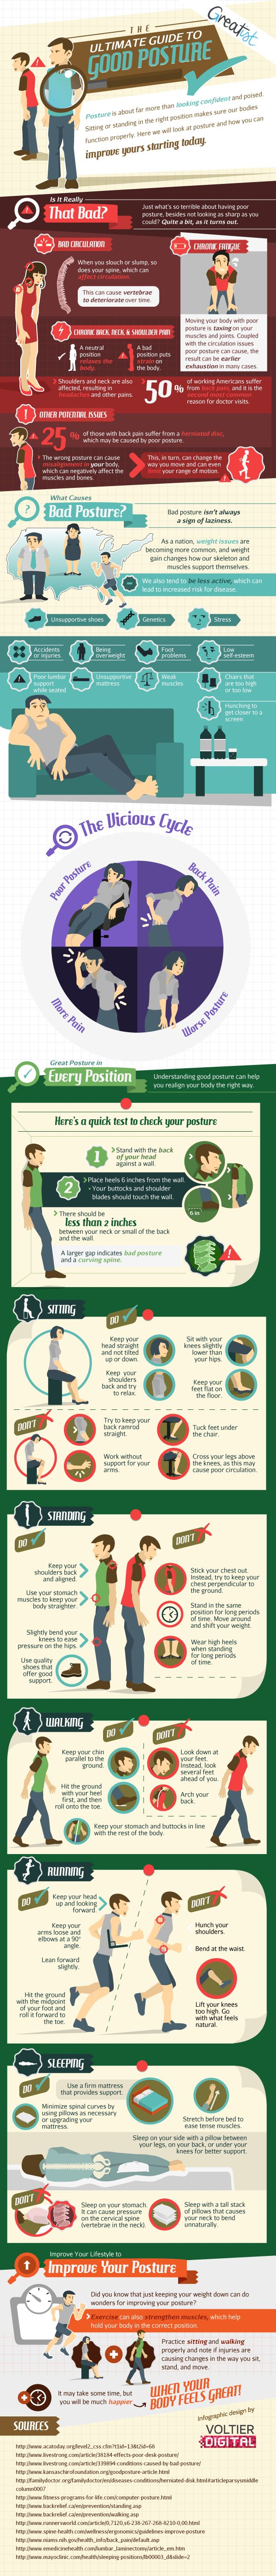 What a difference good posture makes! #healthyideas